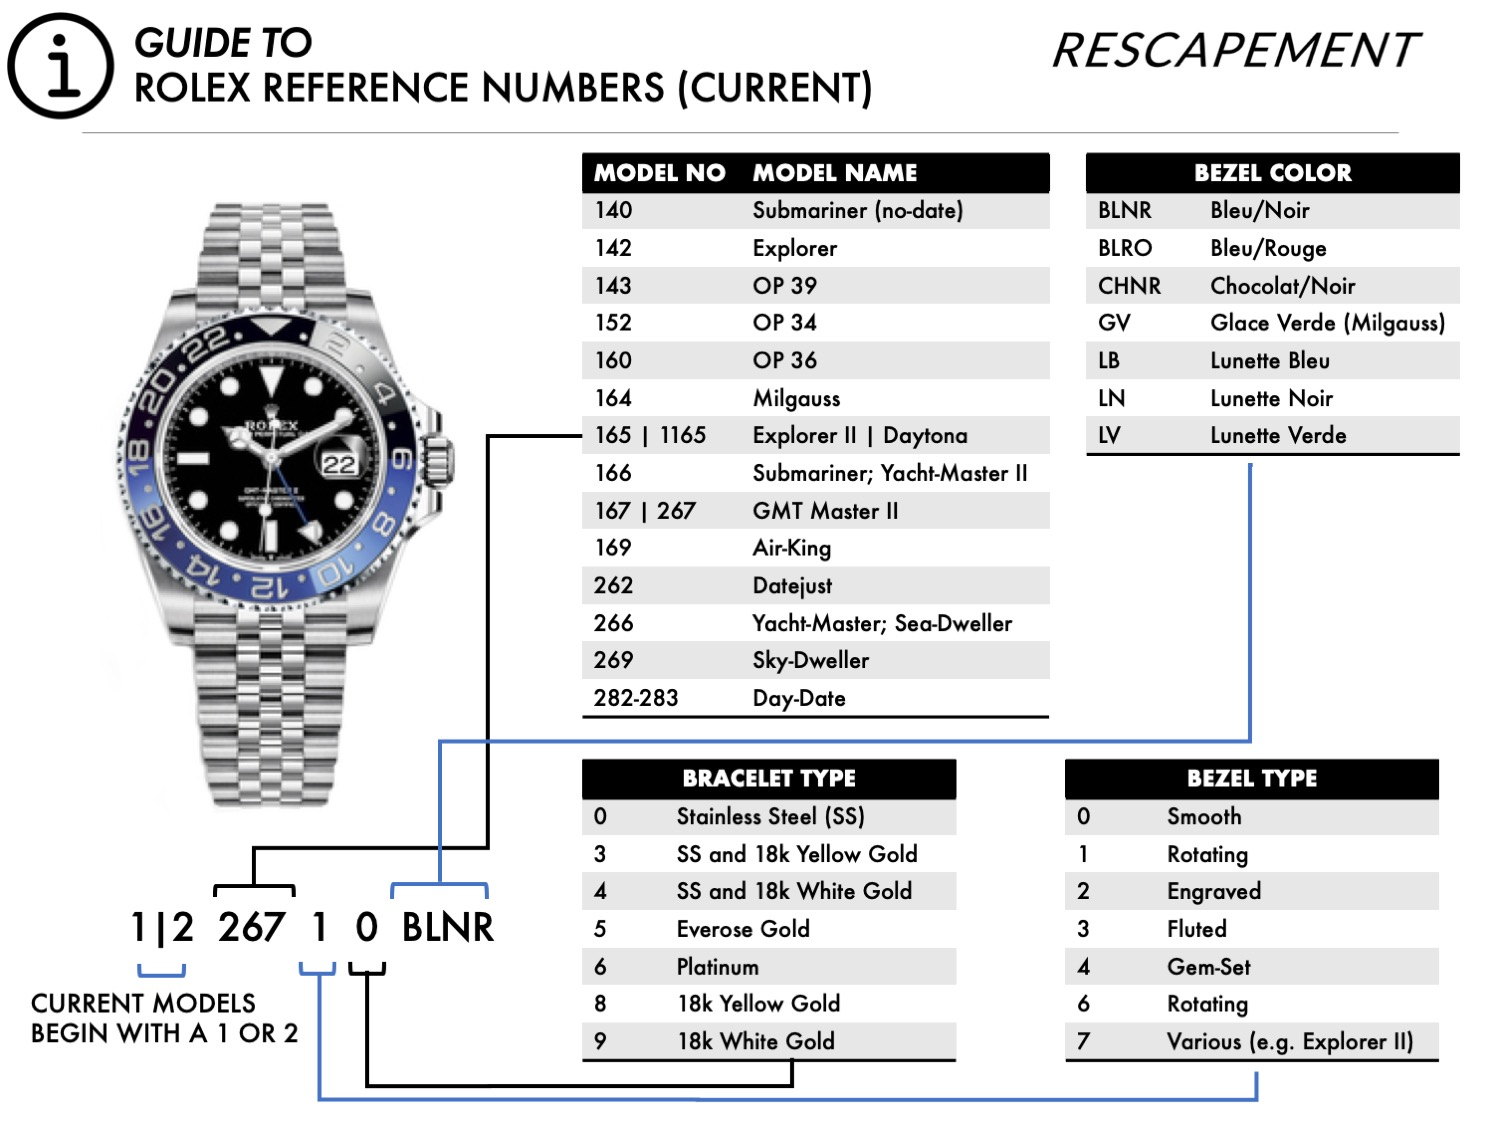 Rolex reference numbers Infographic.jpg